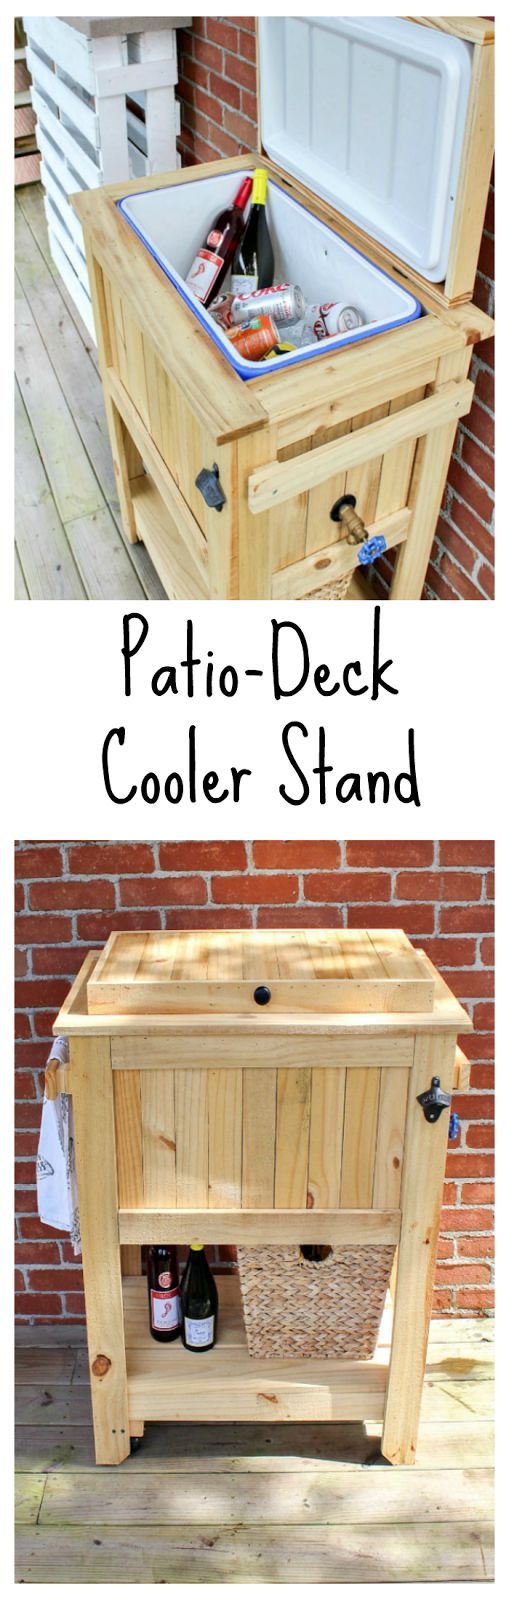 Patio/Deck Cooler Stand | #InspirationSpotlgiht